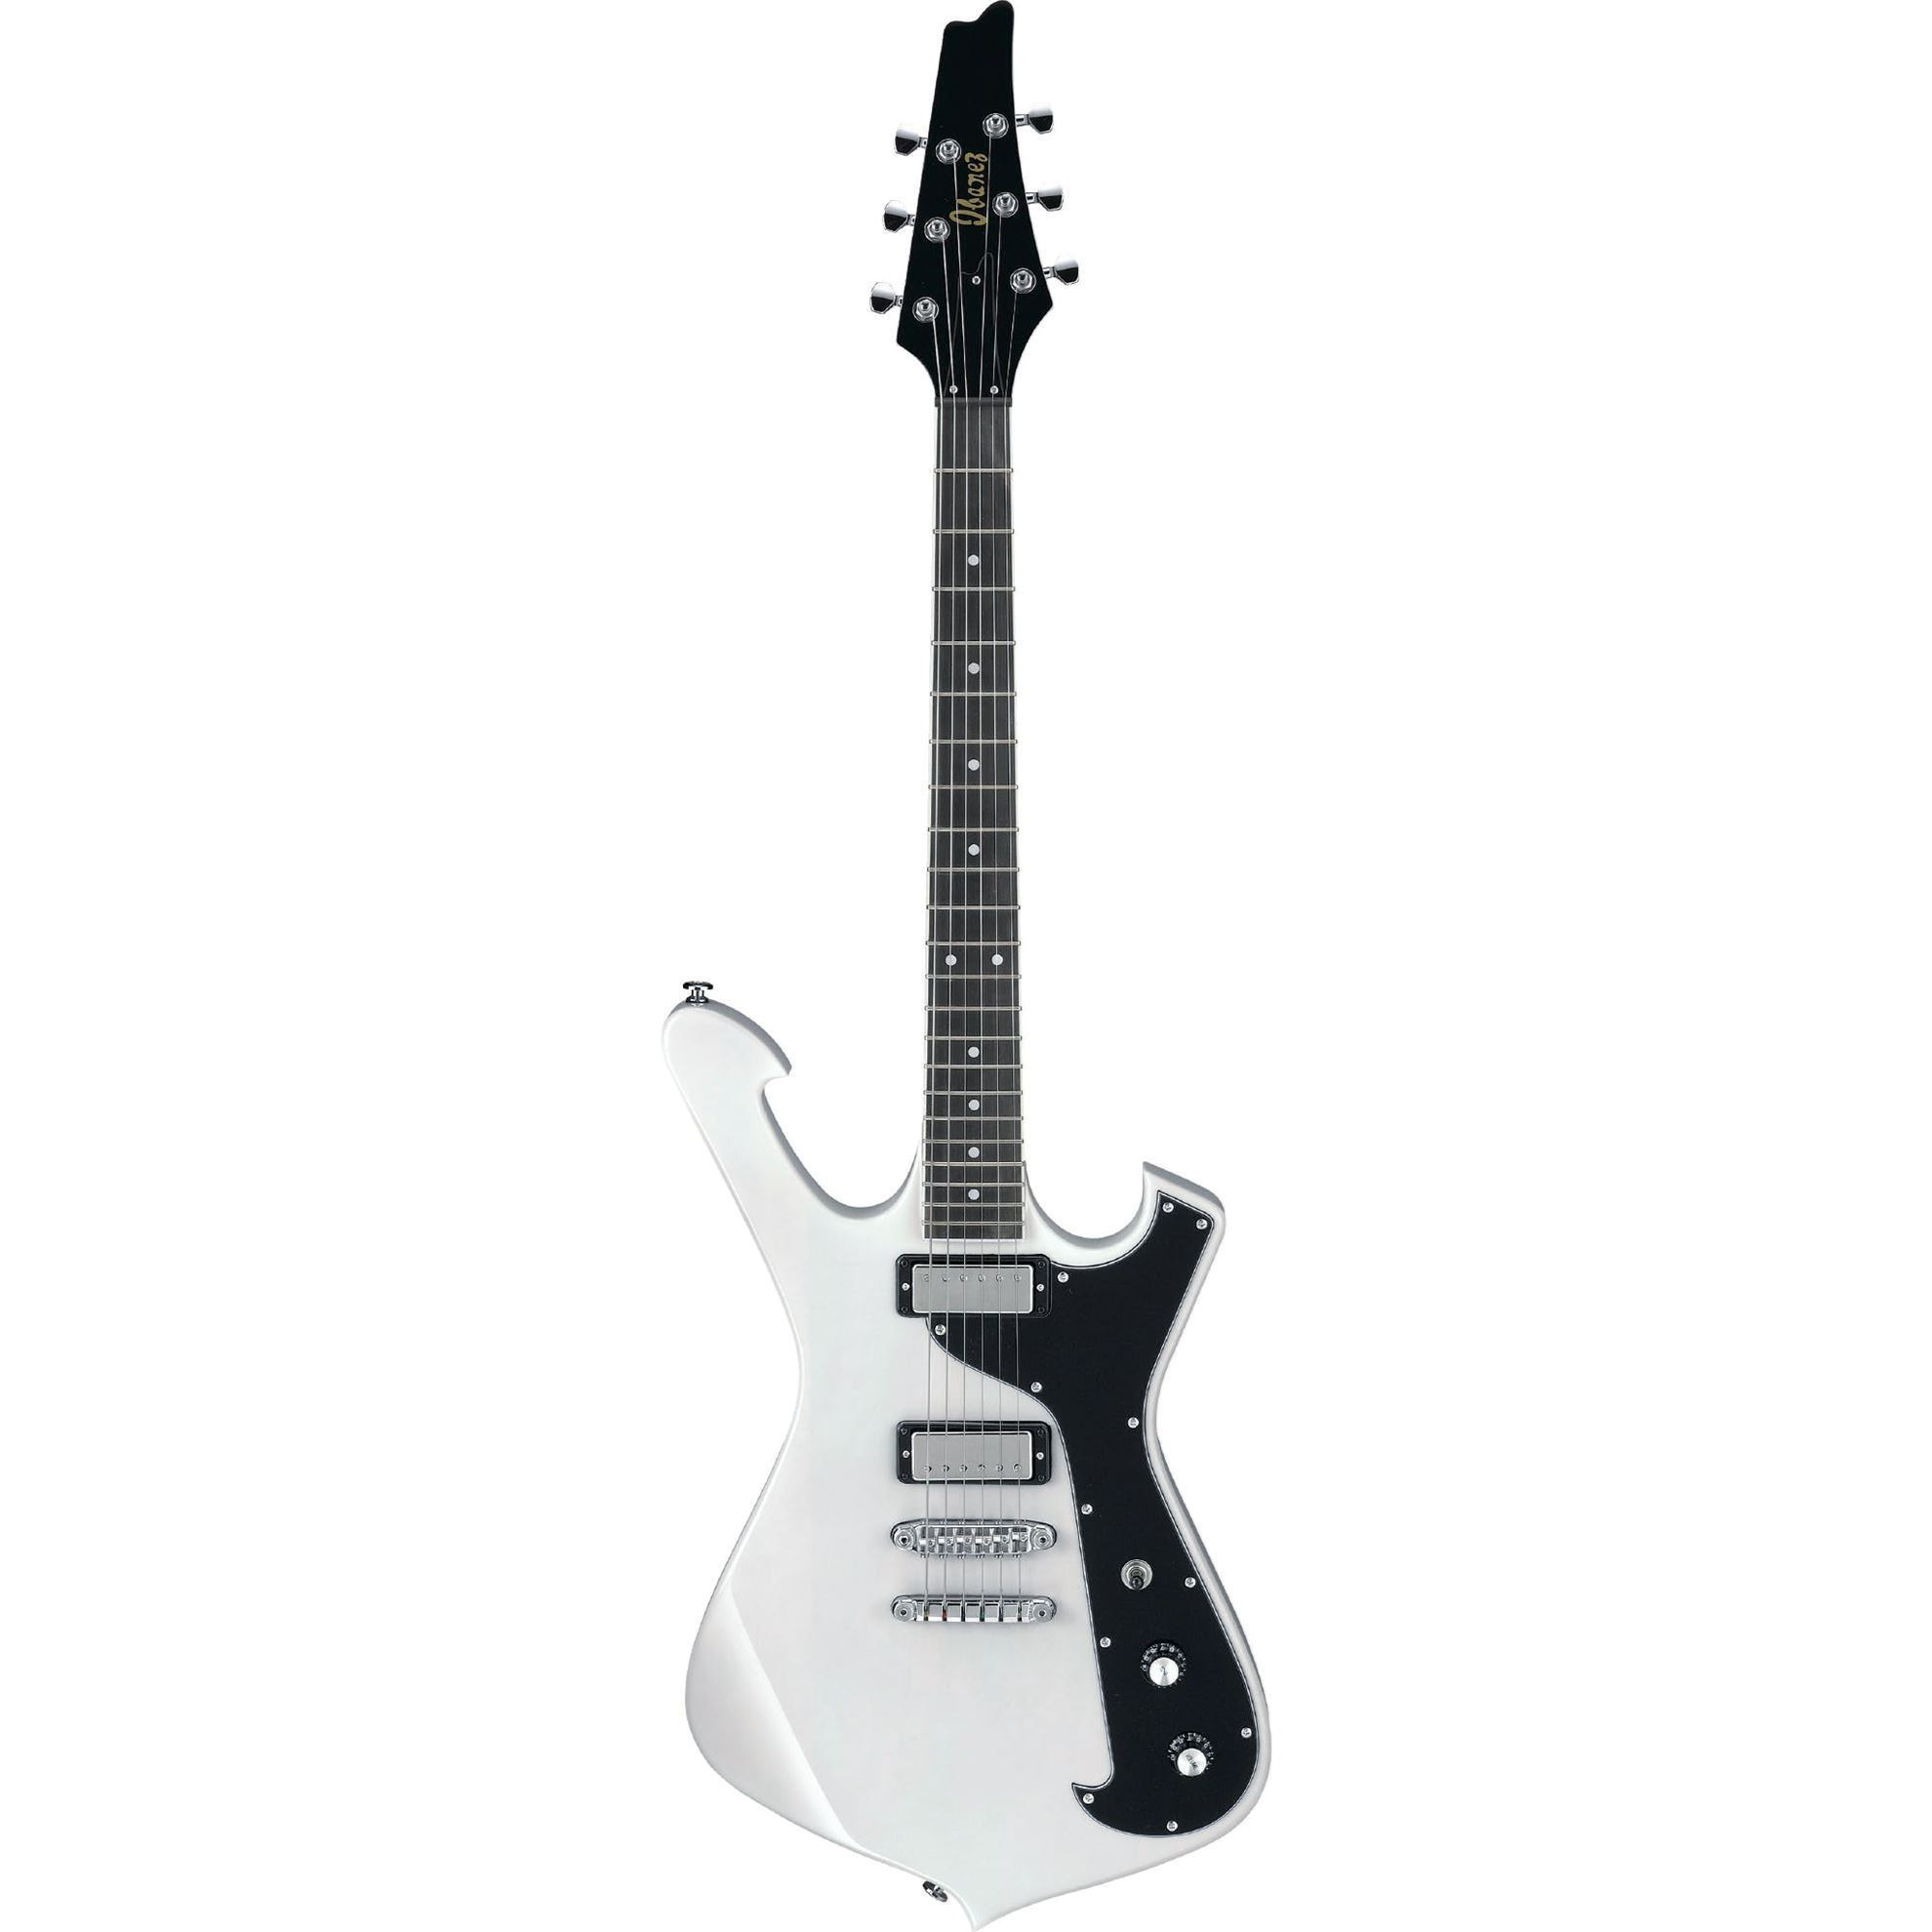 ibanez frm200 paul gilbert signature model electric guitar white blonde perth mega music. Black Bedroom Furniture Sets. Home Design Ideas